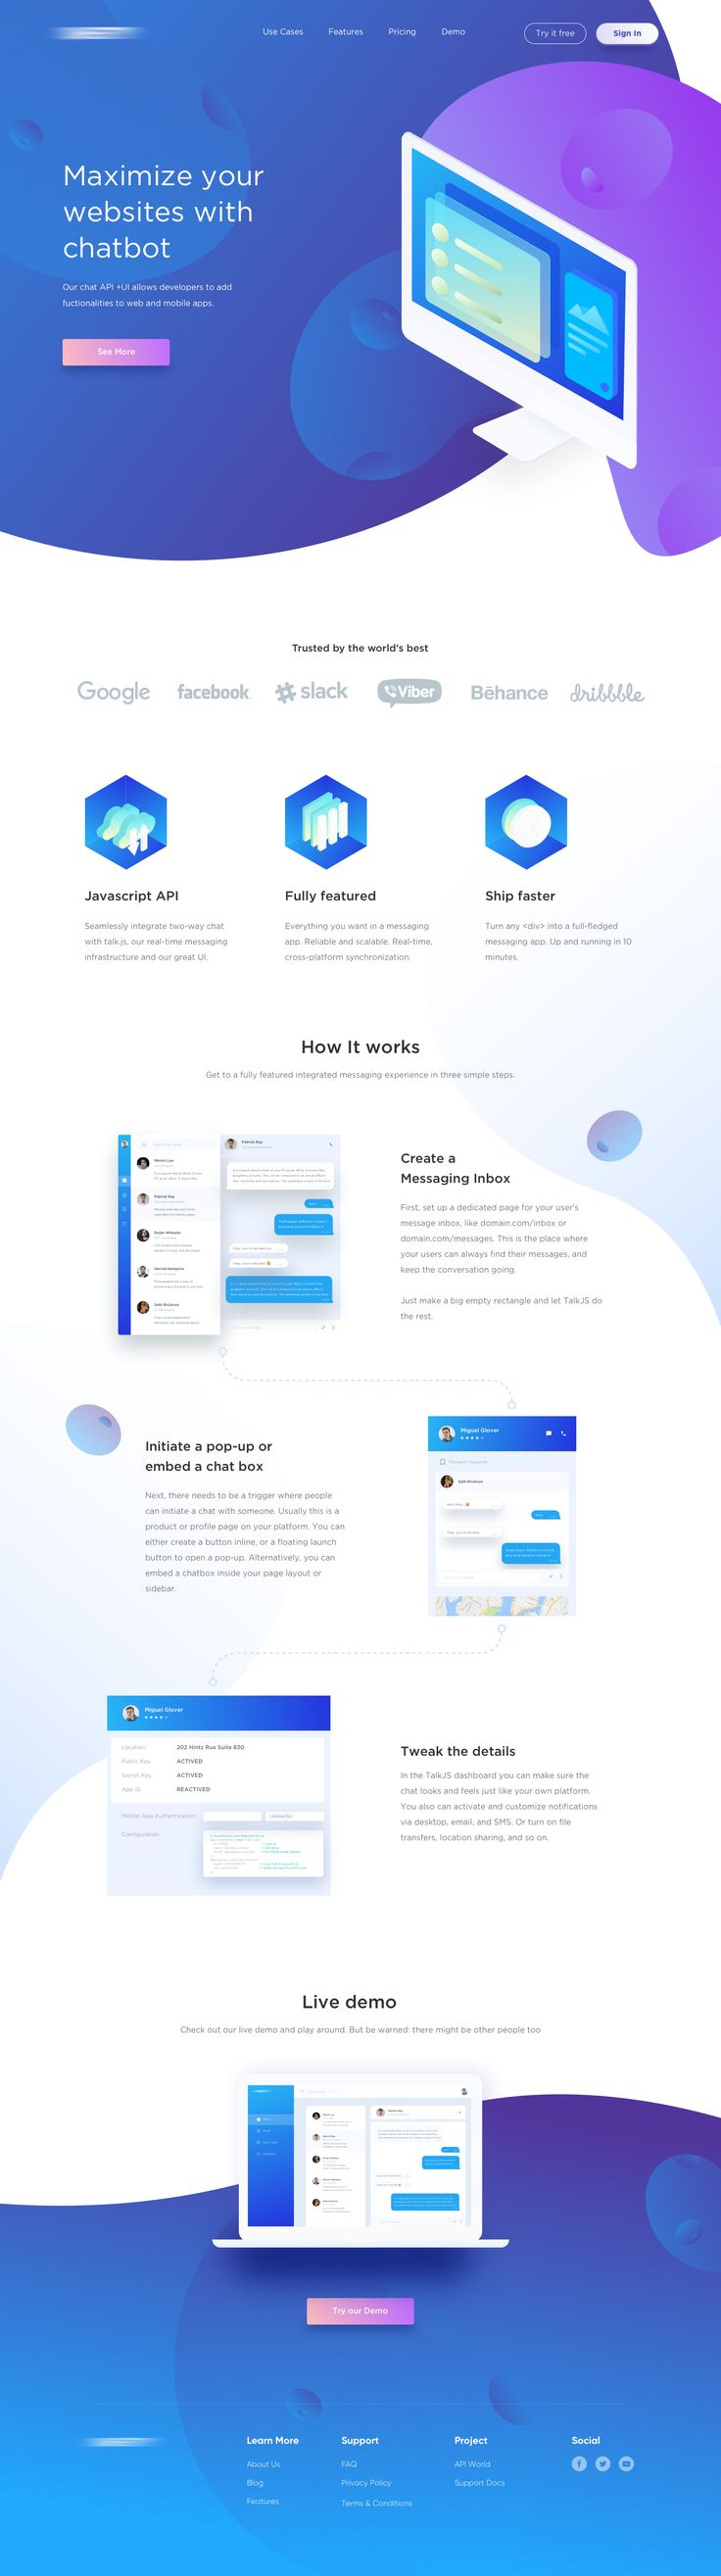 Landing page www.vwire.blogspot.in #uxui #appdesign #chatbots